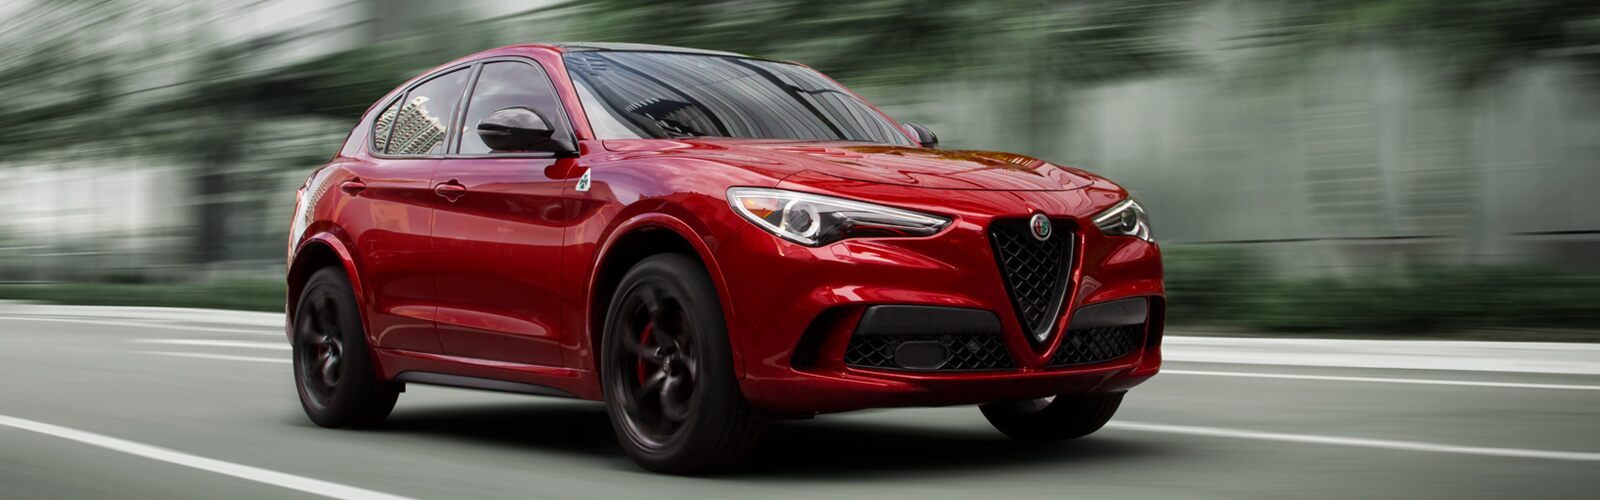 The Alfa Romeo Stelvio Alfa Romeo Newport Beach Blog